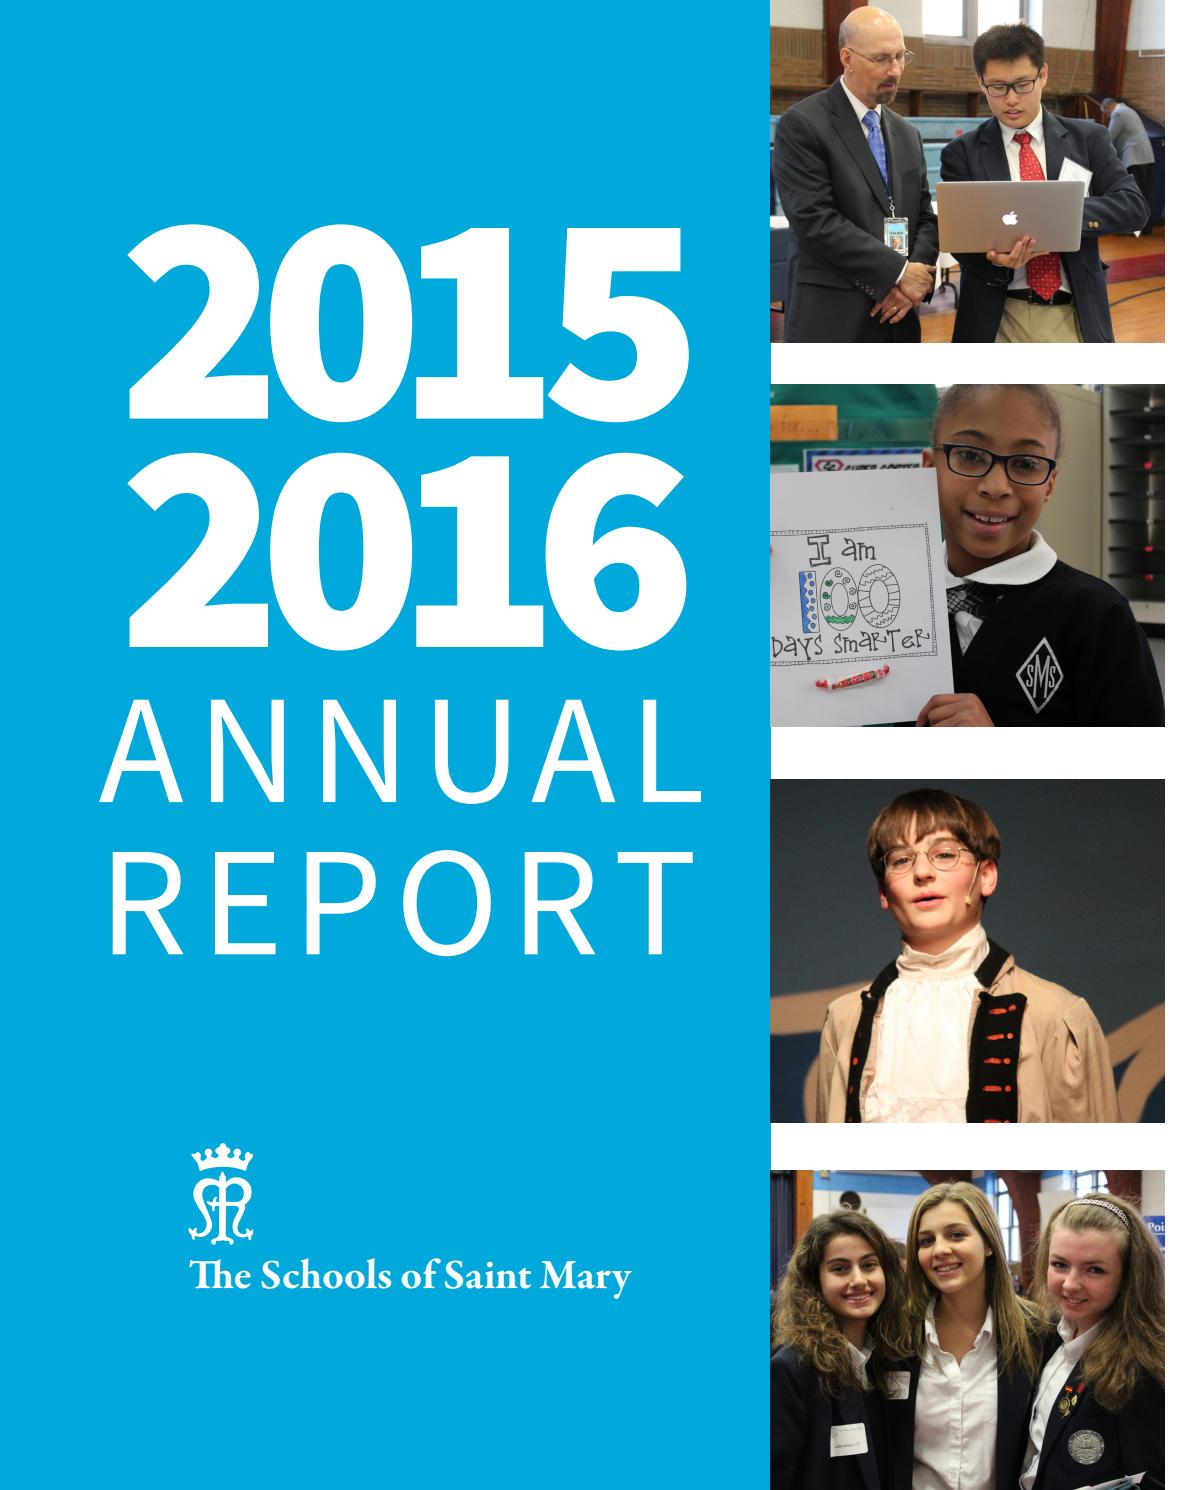 SOSM Annual Report 2015-2016 by Eileen Symmons - Issuu